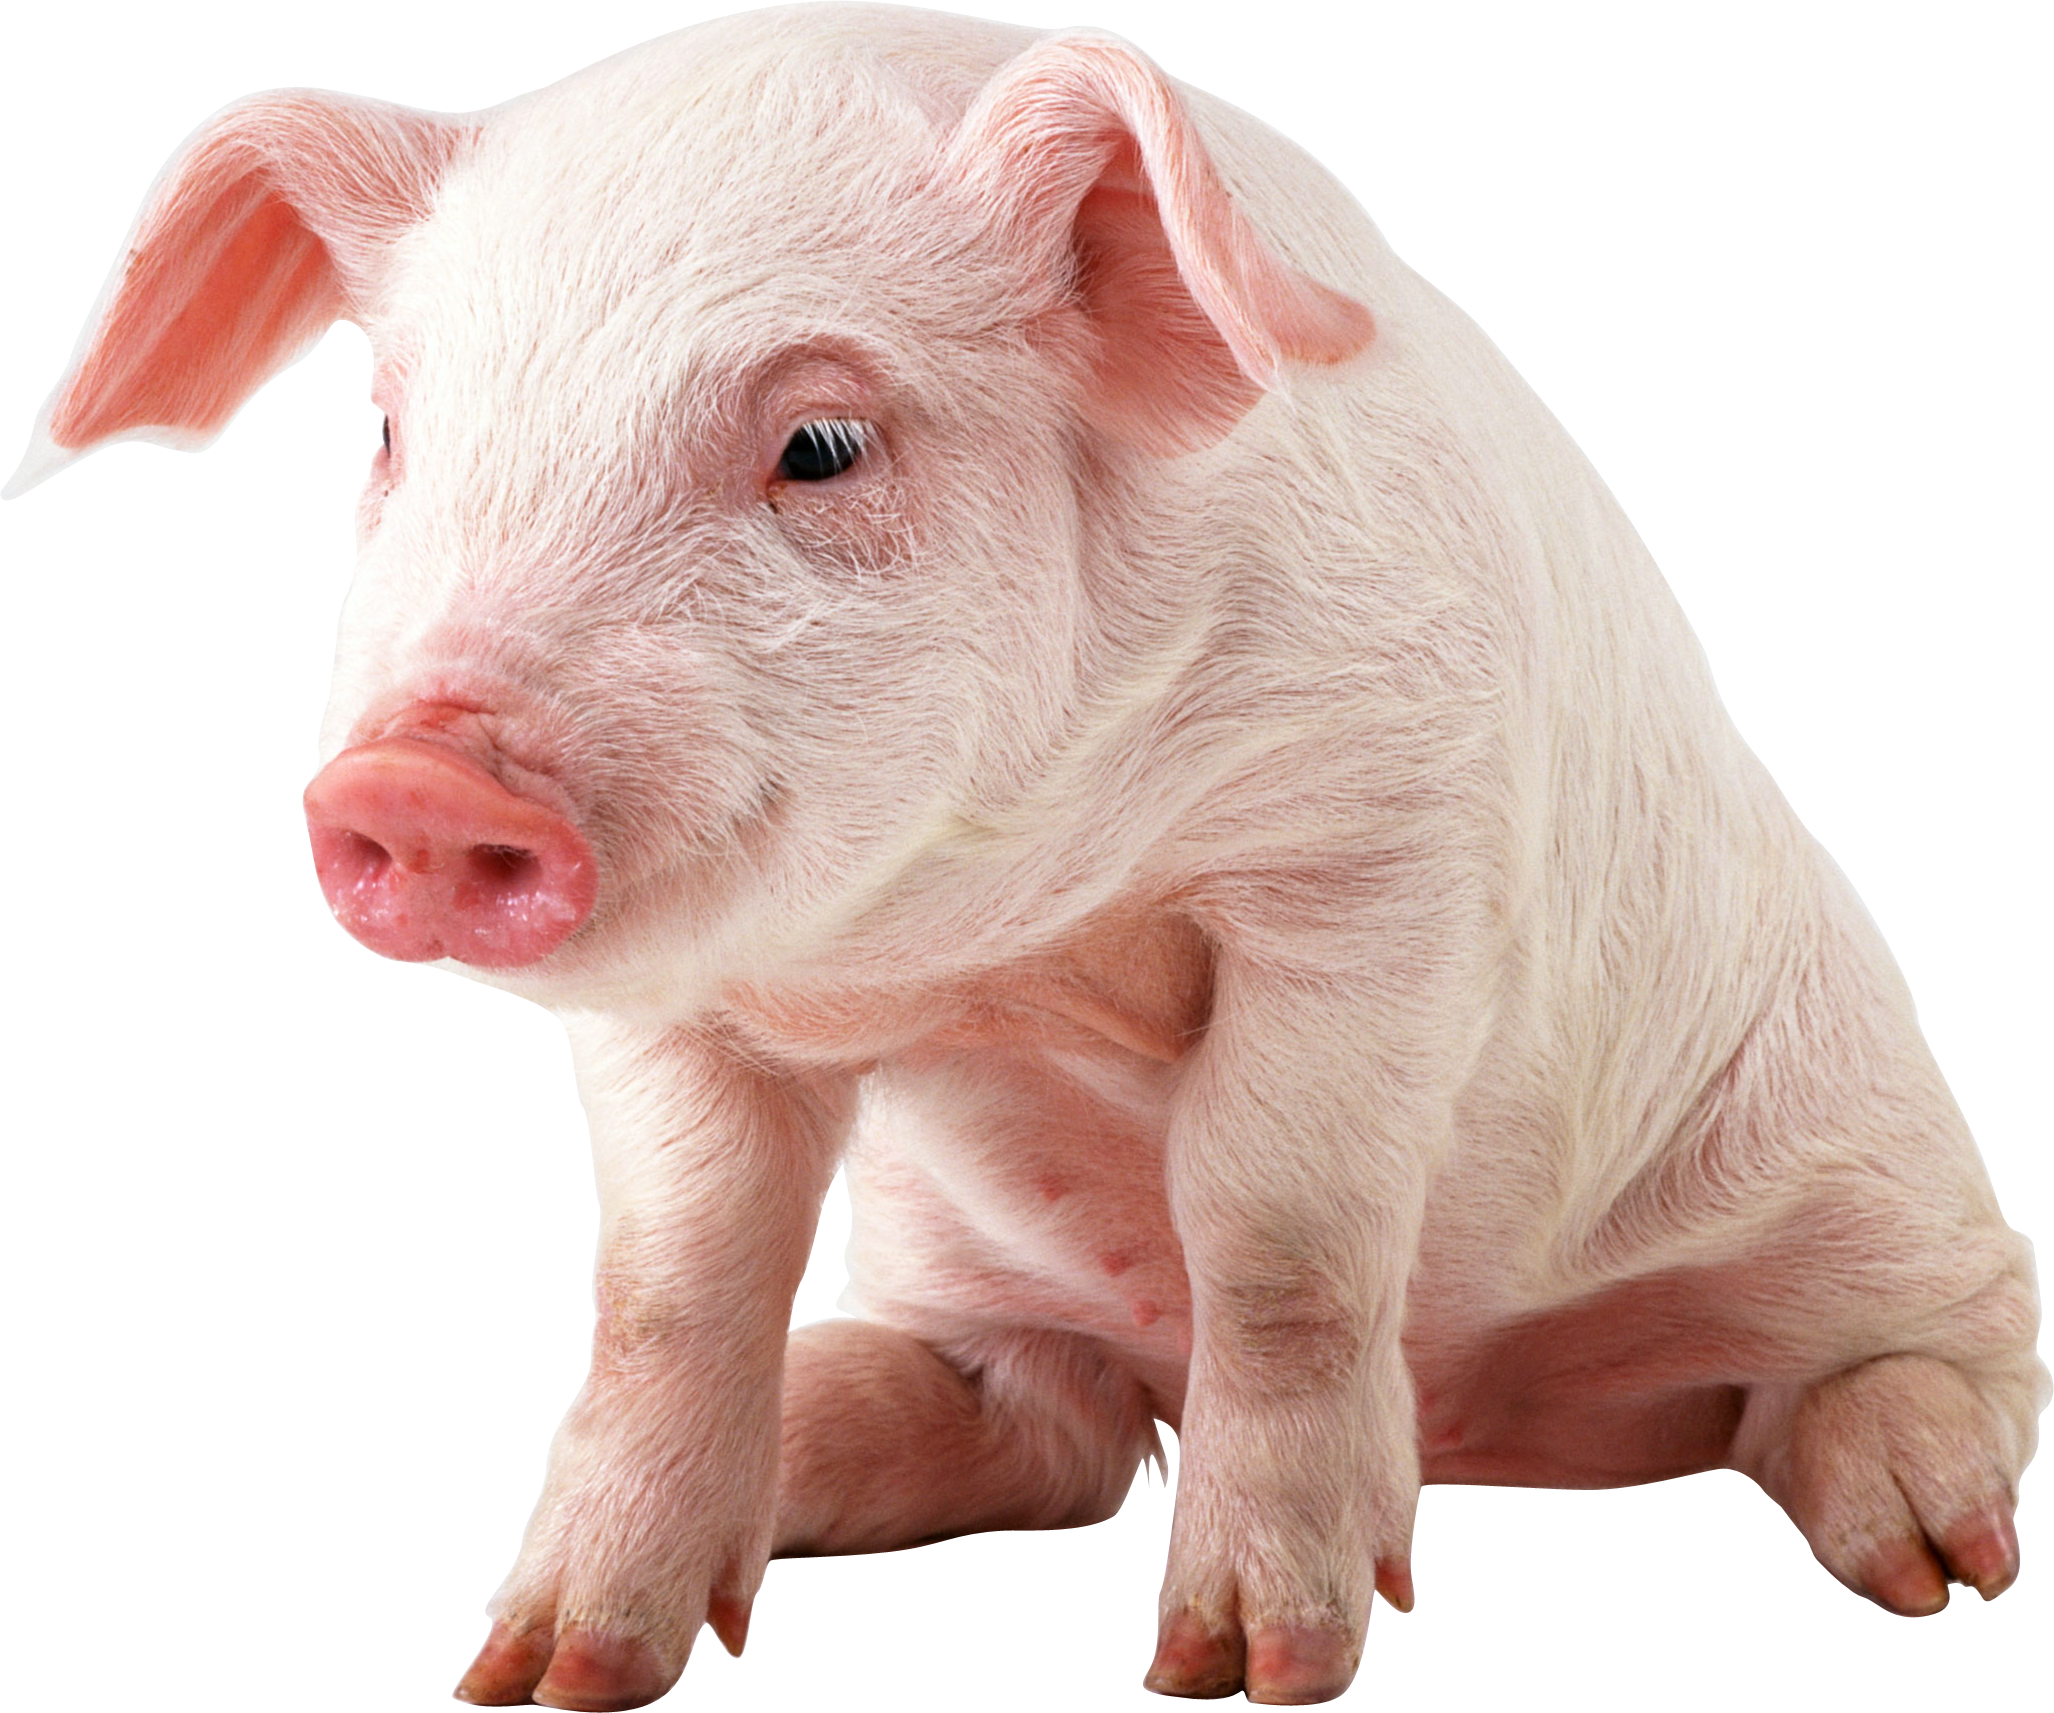 pig black white pig the pig cute animal little pigs baby pigs photo 2054x1713